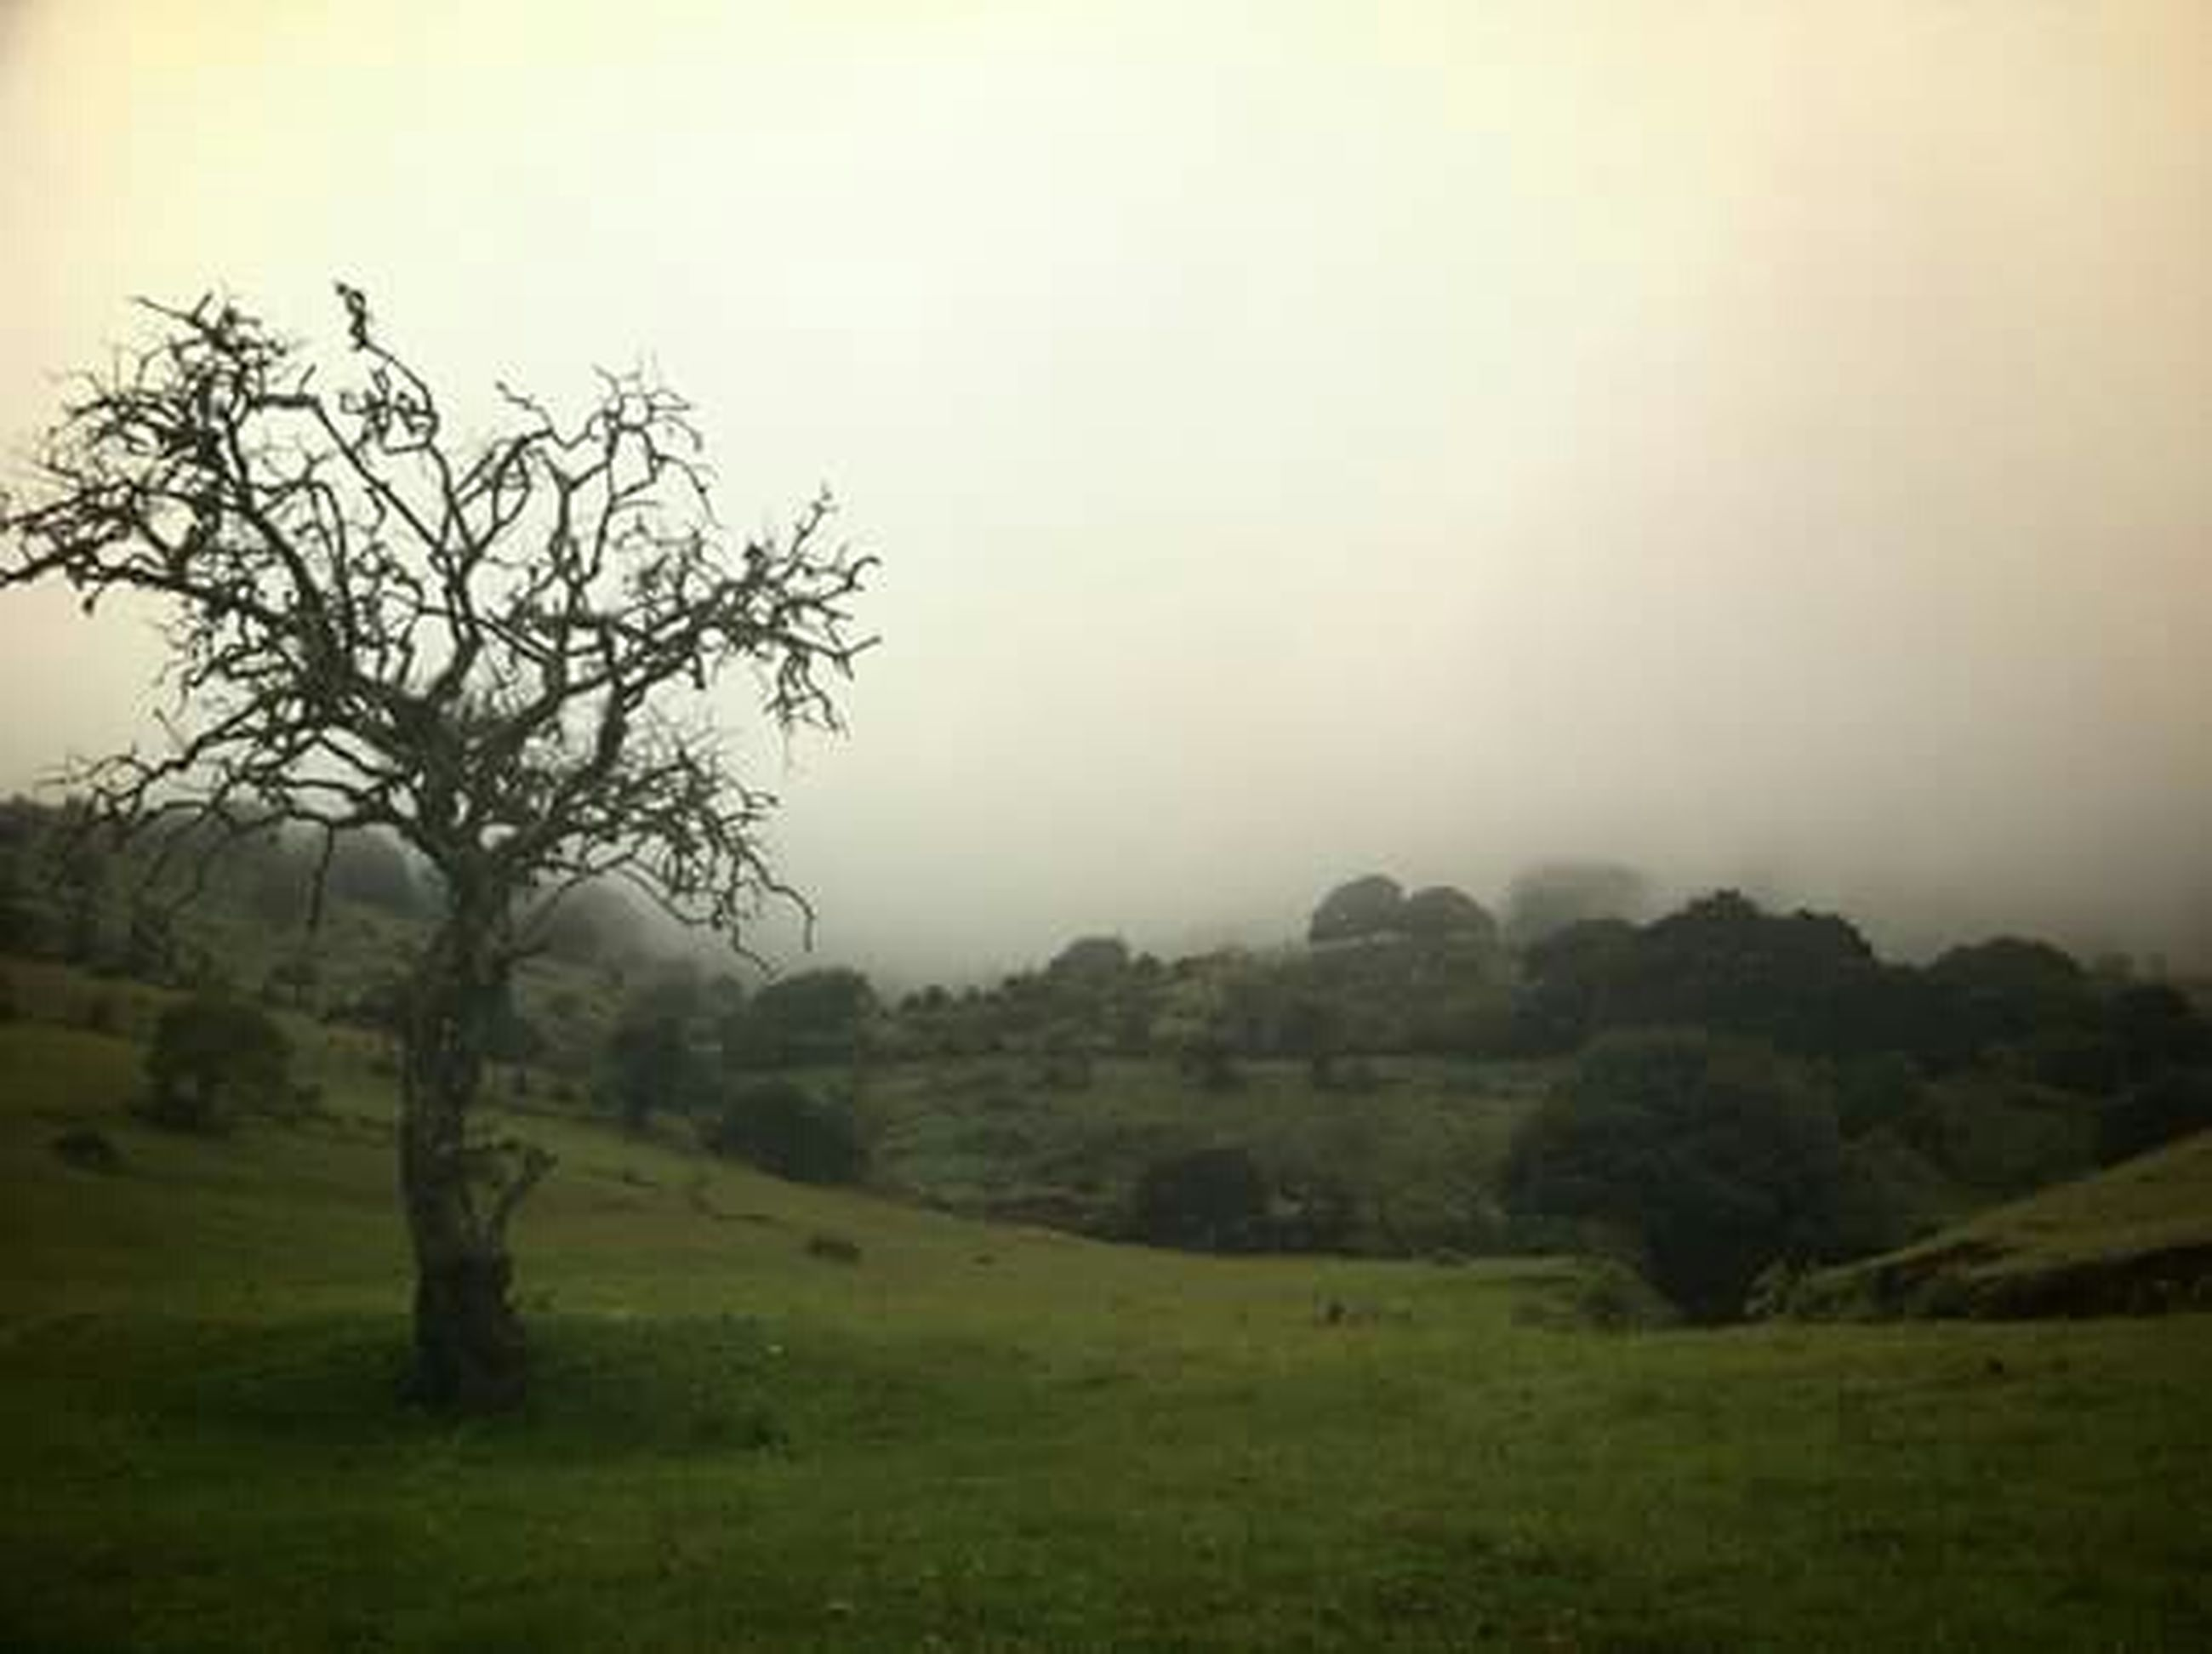 tree, landscape, tranquil scene, fog, tranquility, grass, field, scenics, beauty in nature, foggy, nature, grassy, growth, green color, sky, copy space, non-urban scene, weather, idyllic